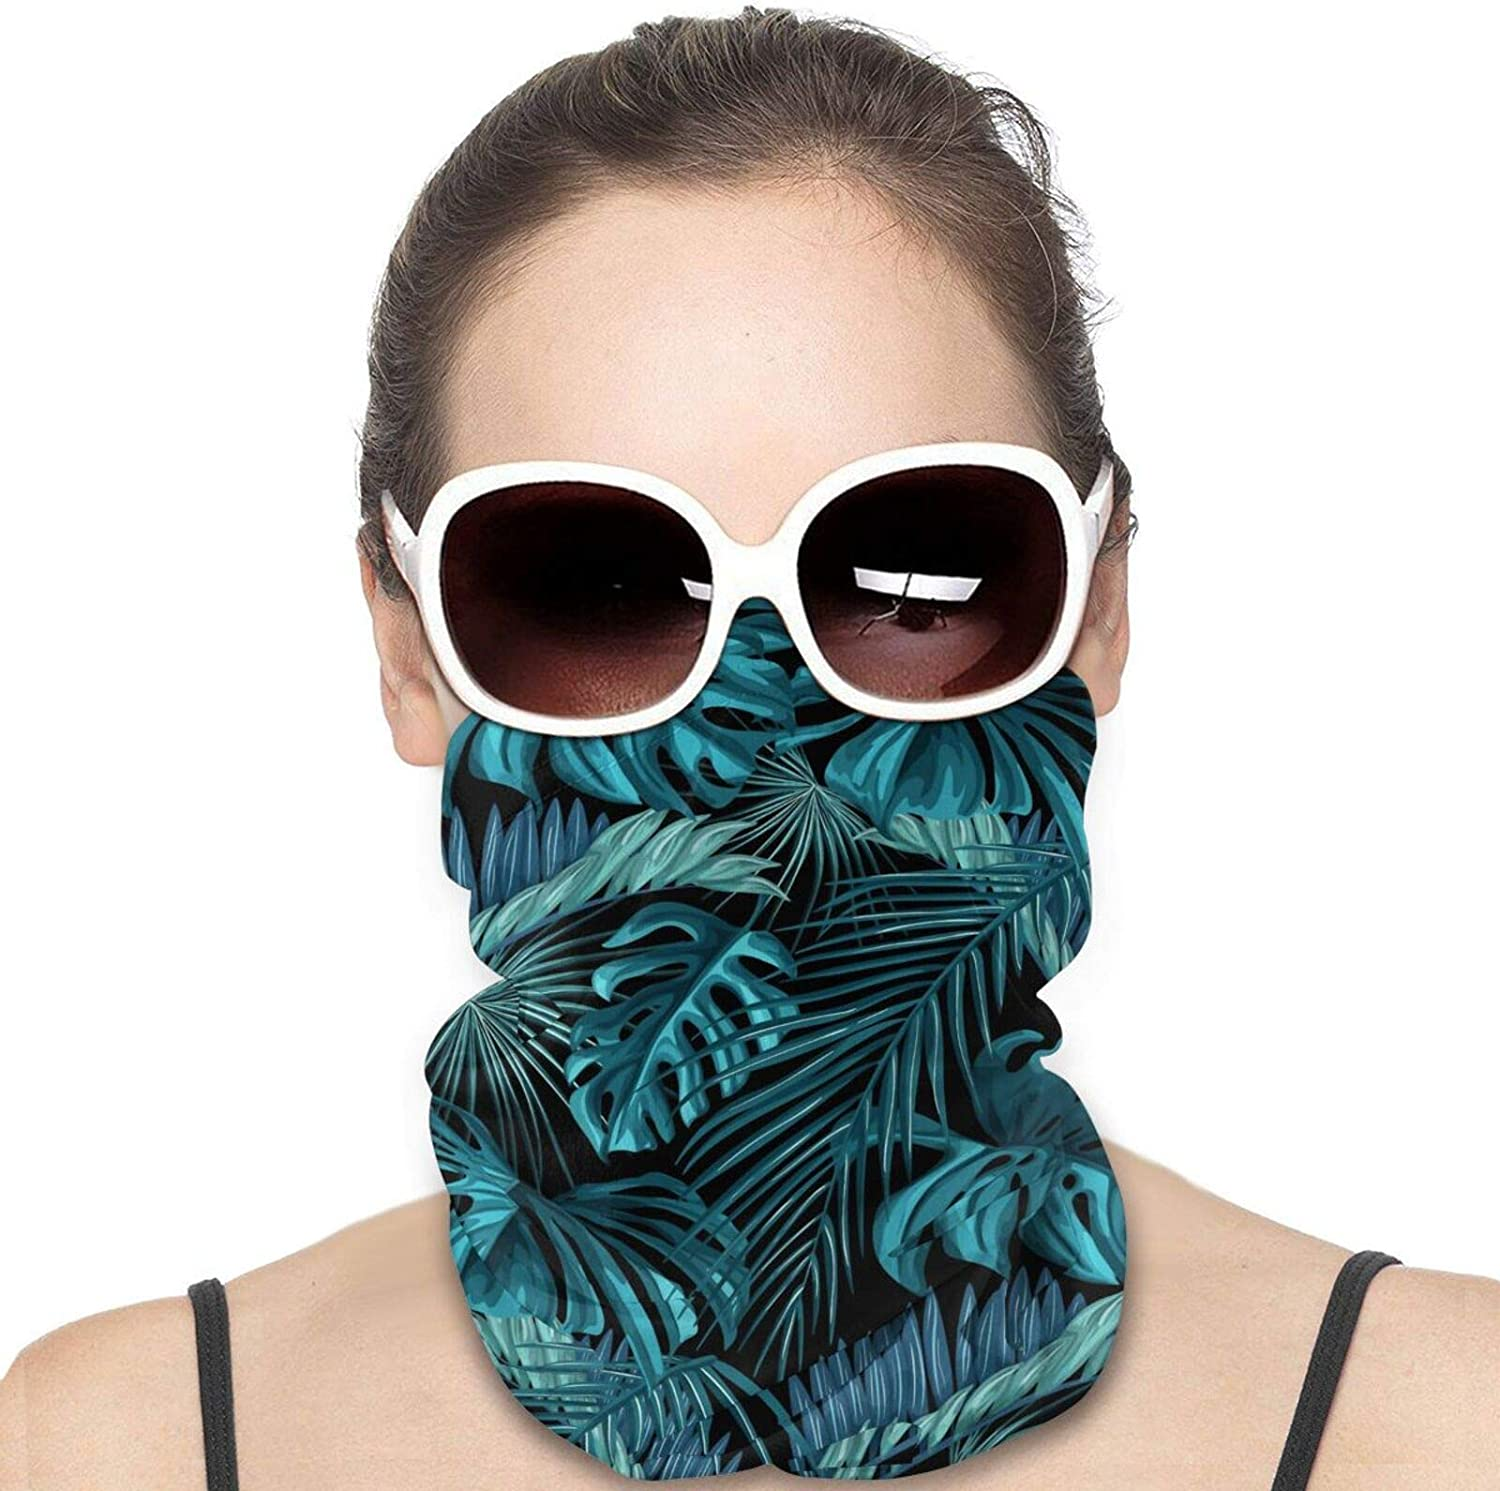 Tropical Leaves Neck Gaiter Windproof Face Cover Balaclava Outdoors Magic Scarf Headband for Men Women Motorcycling Fishing Running Climbing